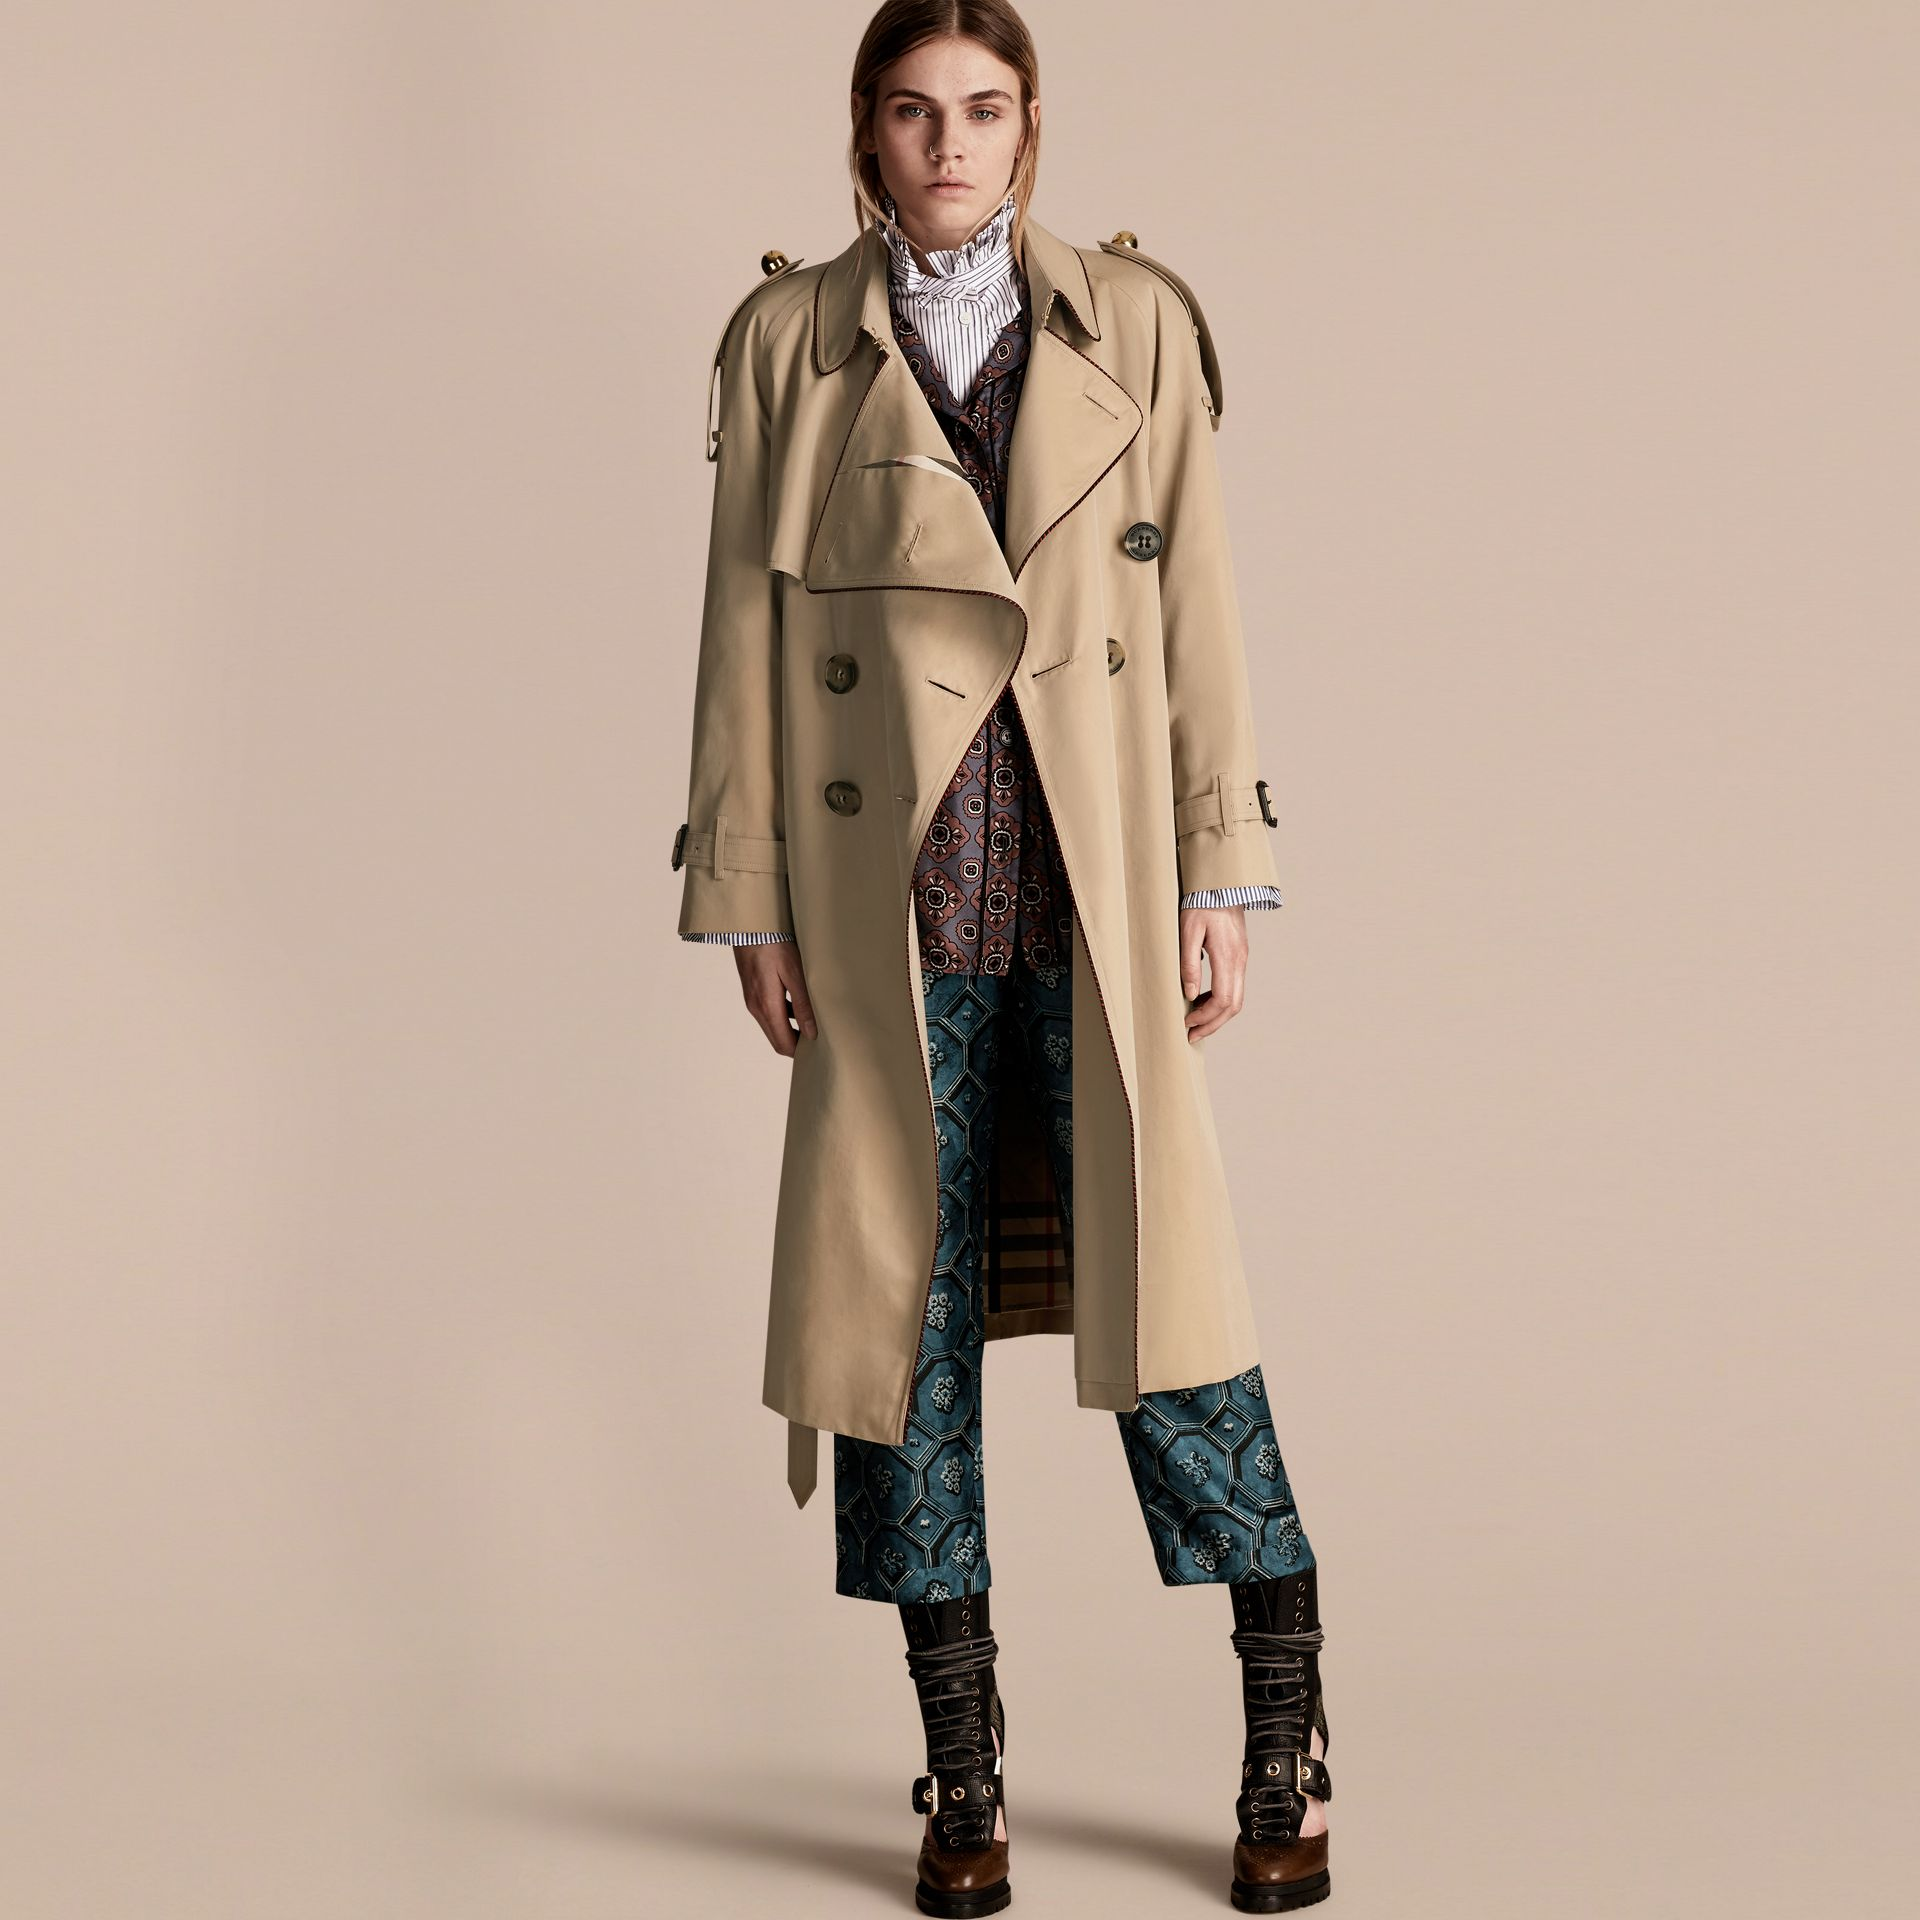 Honey Deconstructed Trench Coat with Regimental Piping - gallery image 1